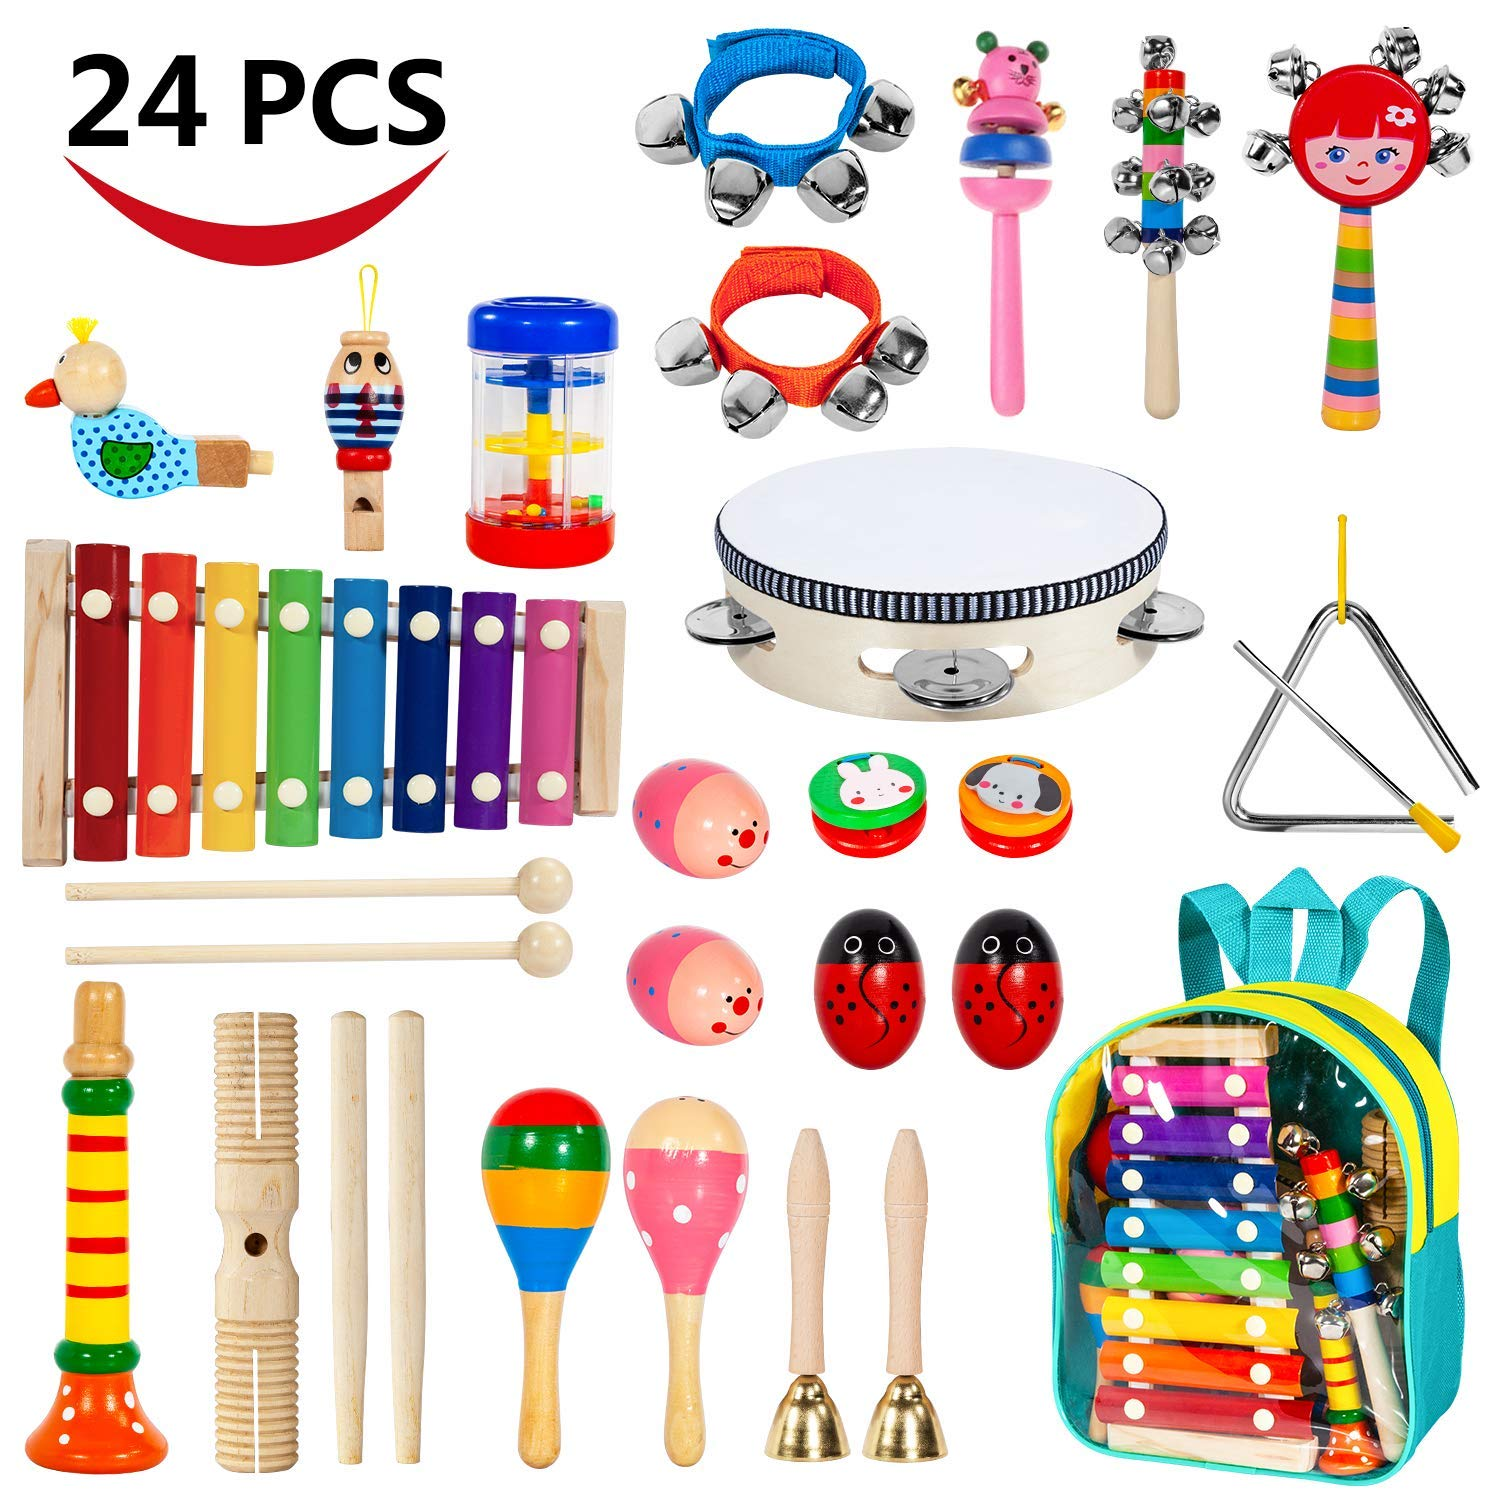 17 Pcs Musical Instruments Sets with Xylophone for Children Childom Kids Musical Instruments 17 Pcs Wooden Percussion Instruments for Kids Preschool Educational